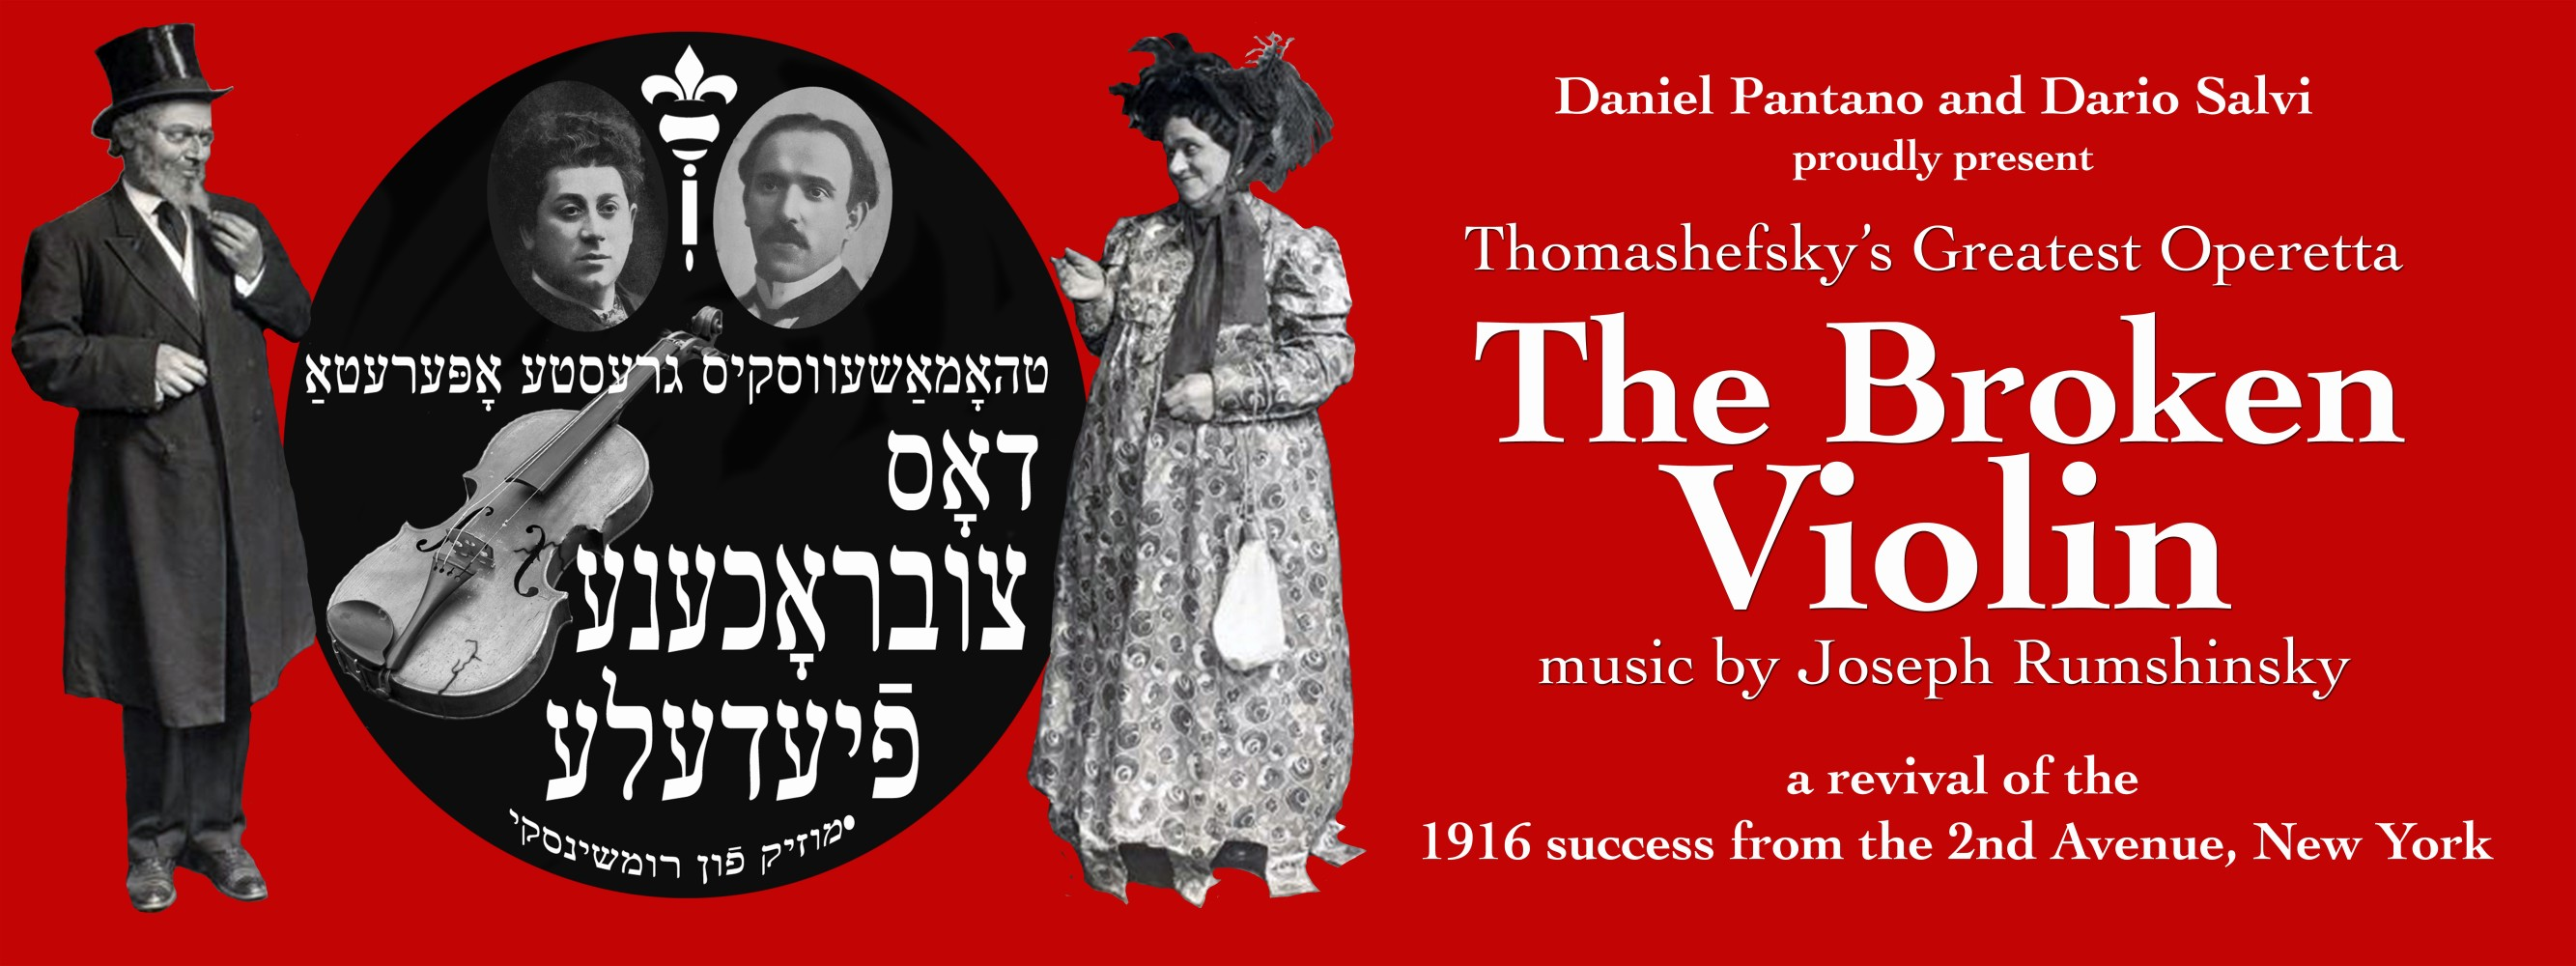 "Concert announcement for ""The Broken Violin,"" by Joseph Rumshinsky and Boris Thomashefsky."